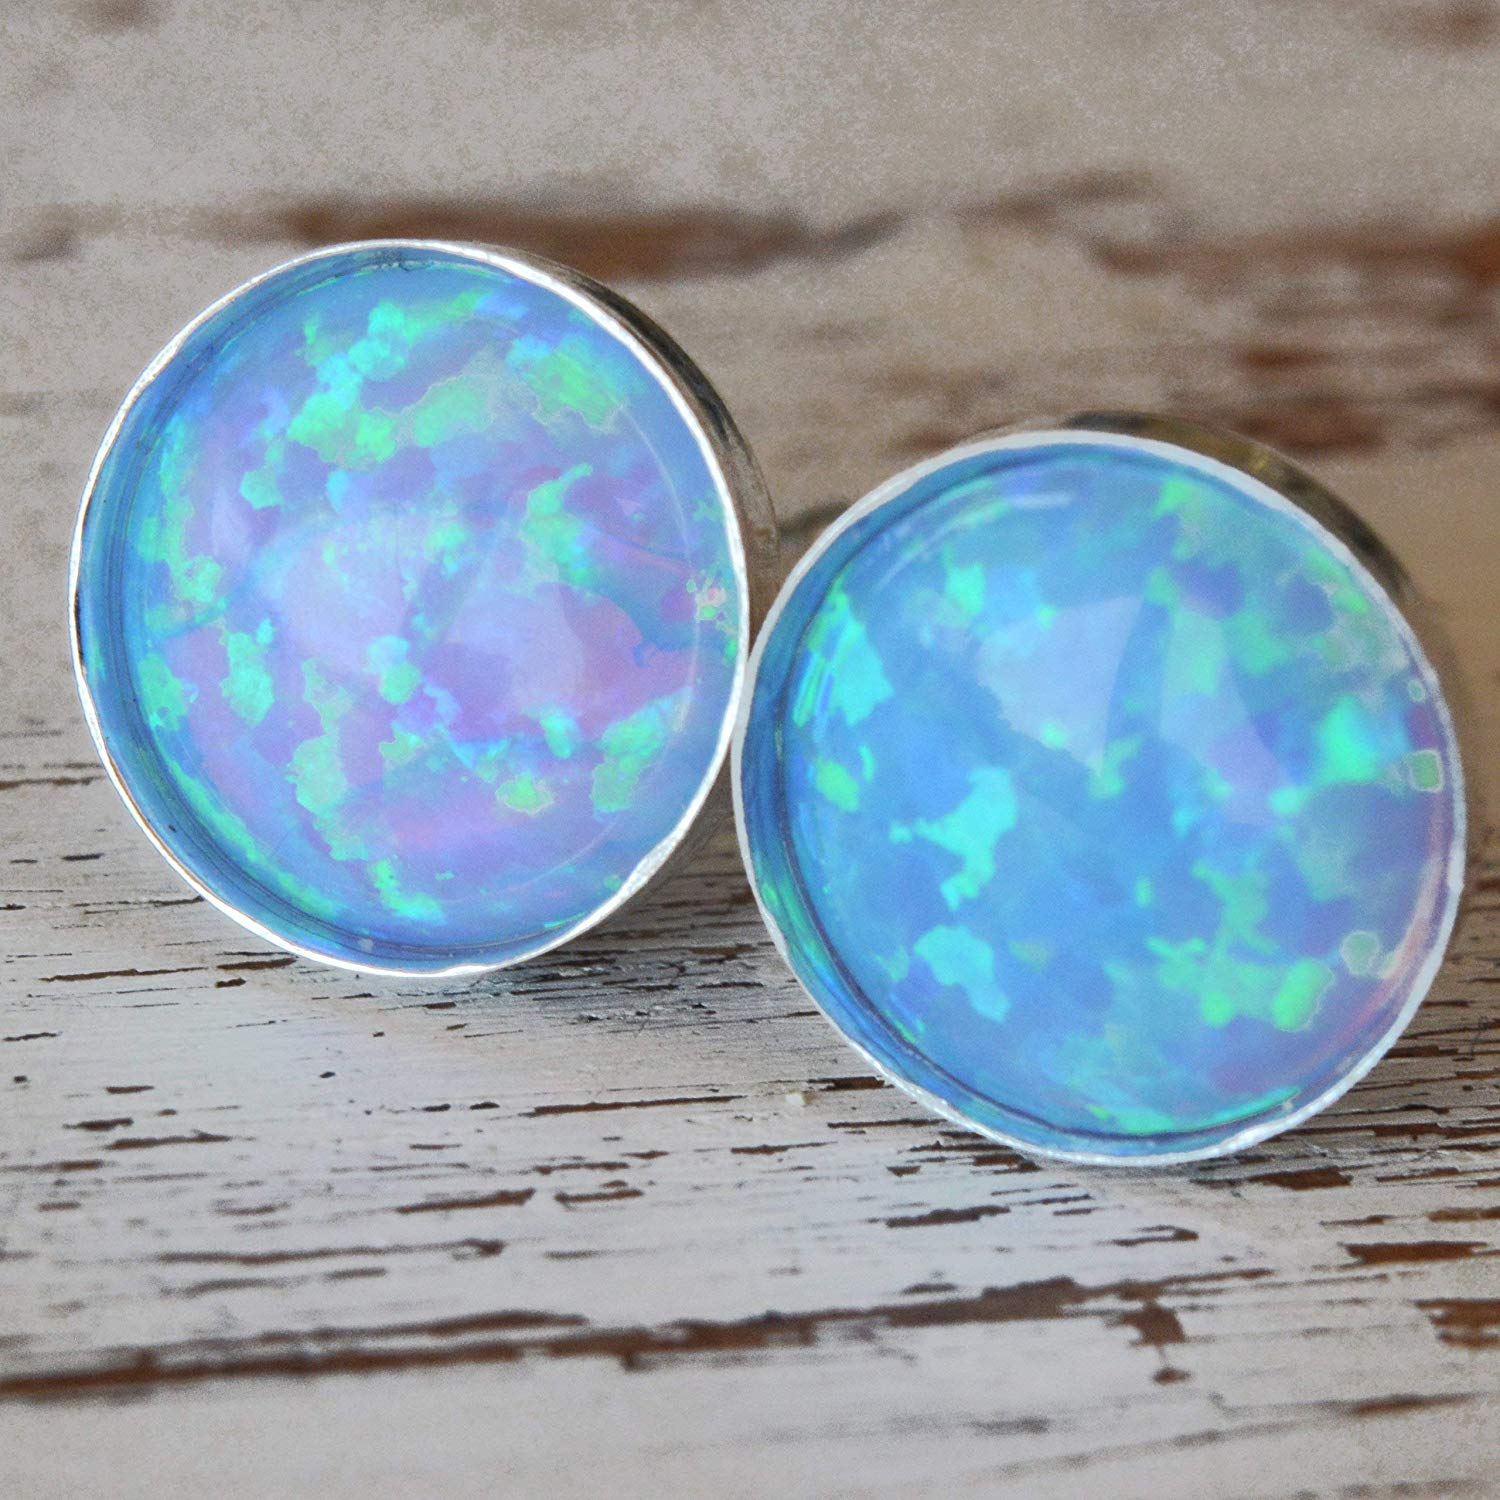 Opal Stud Earrings 6mm Round Sterling Silver Light Blue Opal Minimalist Stud Earrings